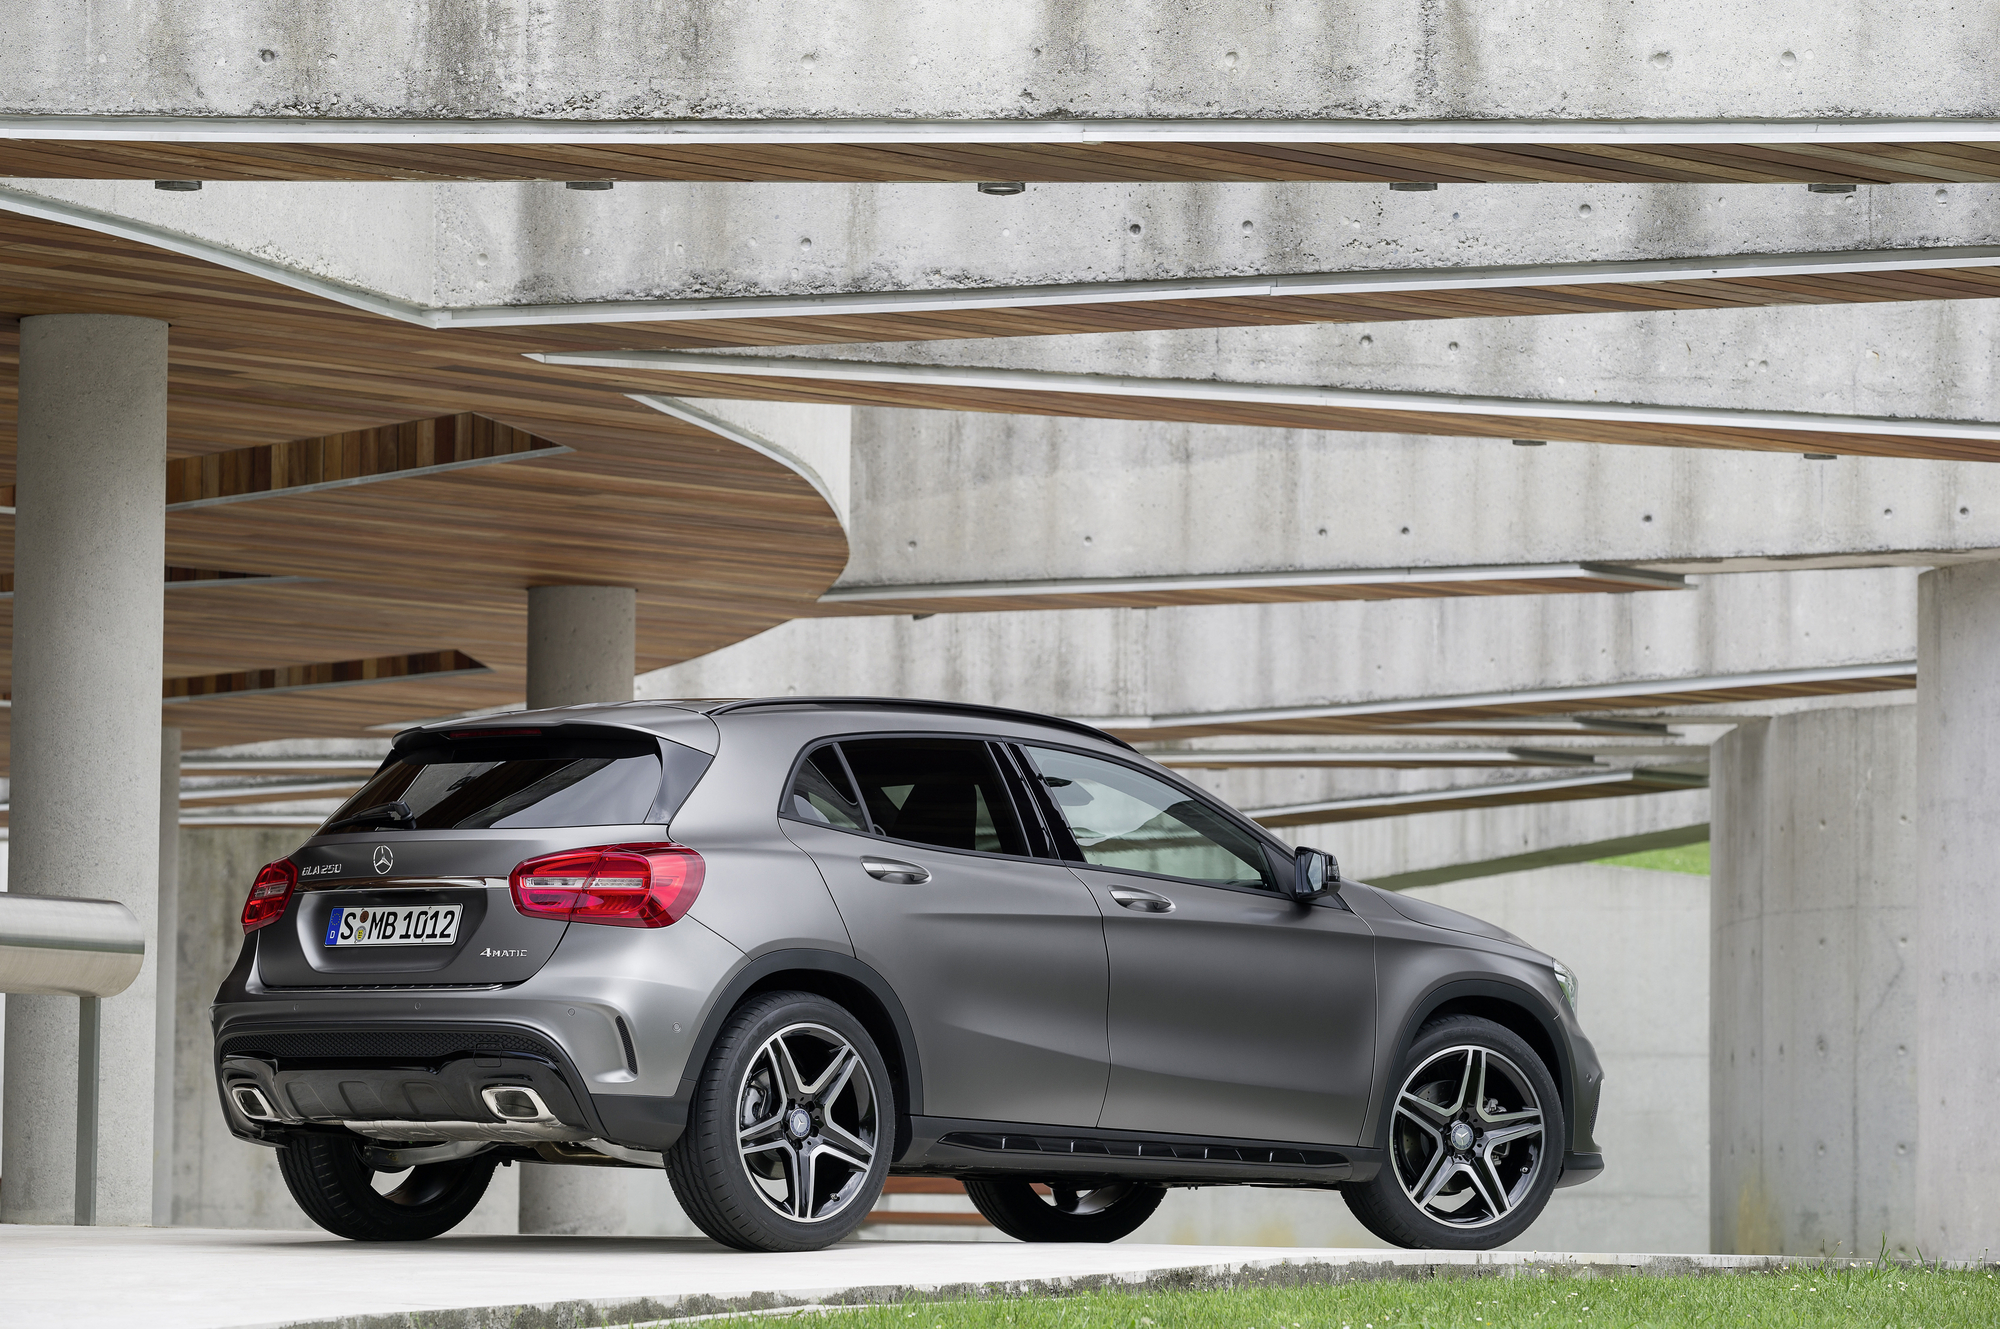 The GLA-Class is coming soon and will likely be a success